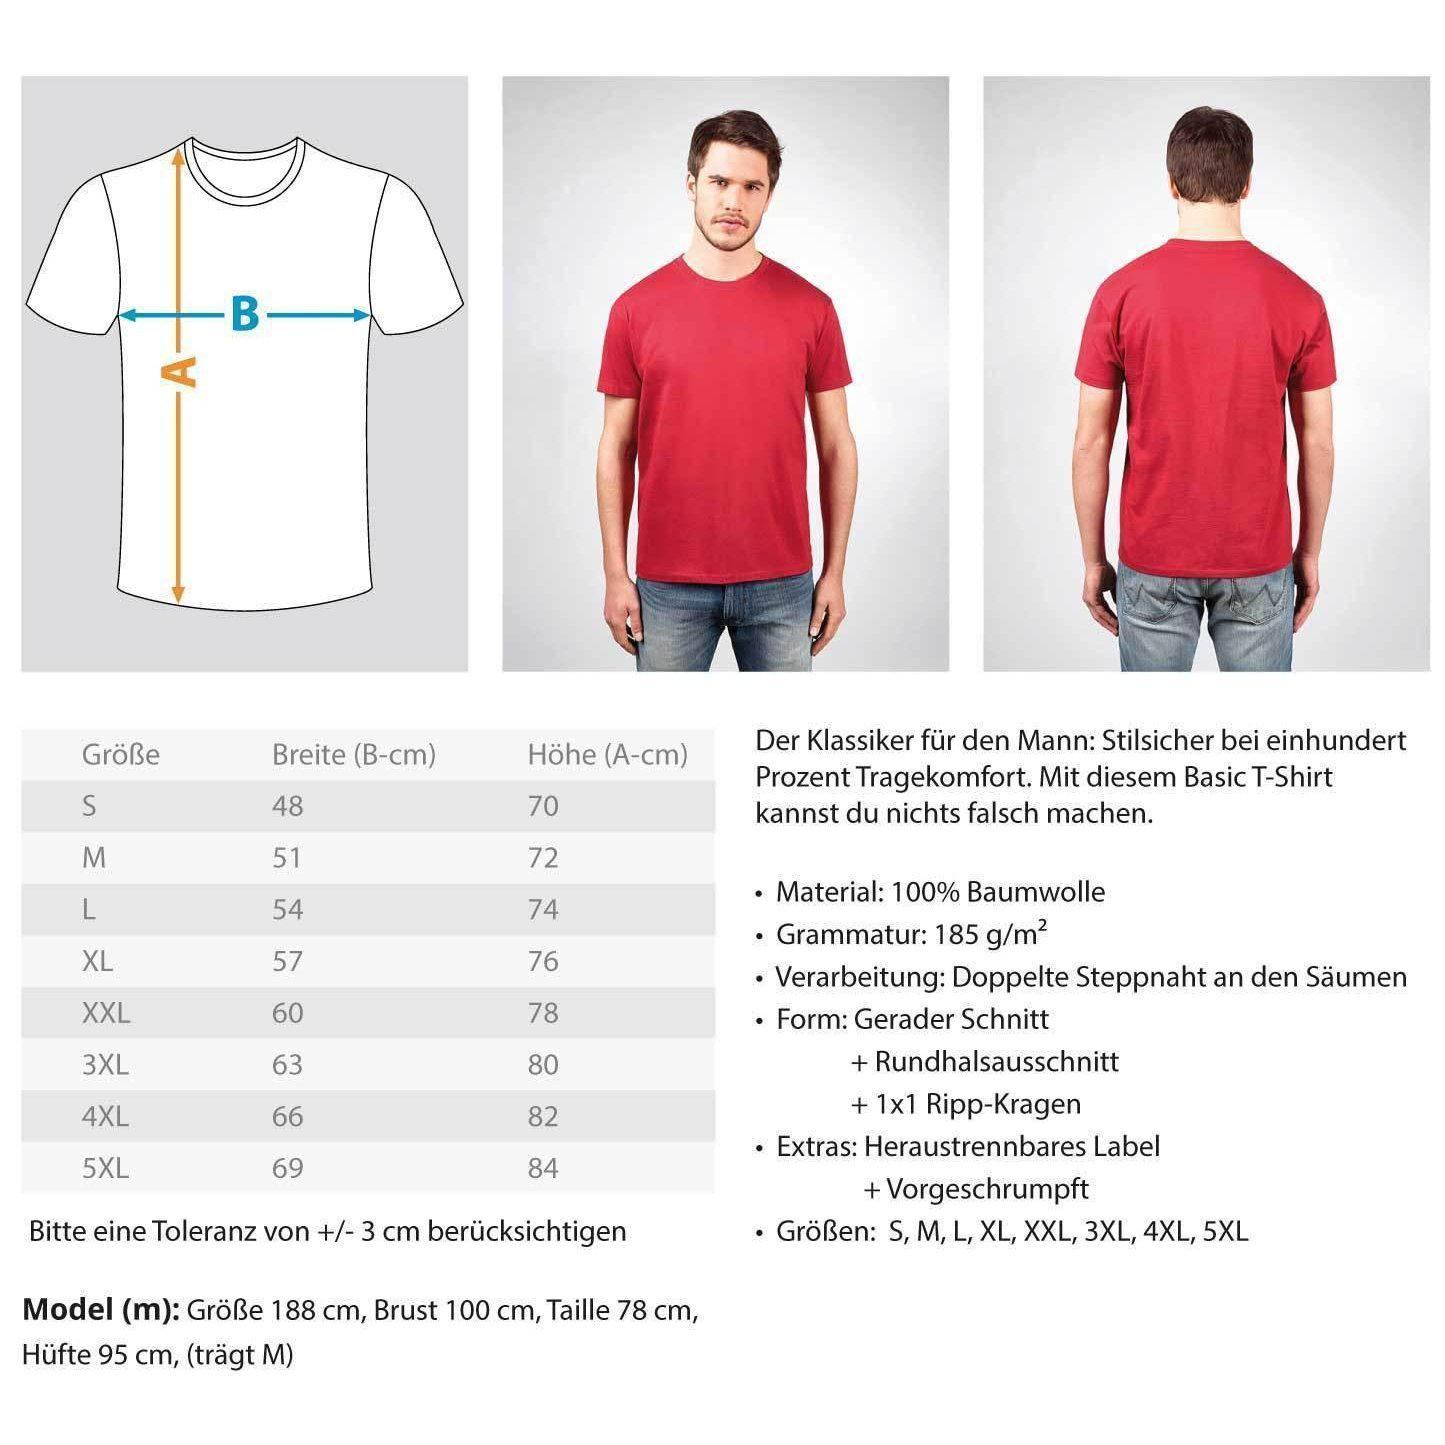 Marcus Manning Light Collection - Men's Shirt Men's Basic T-Shirt - Rave On!® the club & techno scene shop for cool young fashion streetwear style & fashion outfits + sexy festival 420 stuff